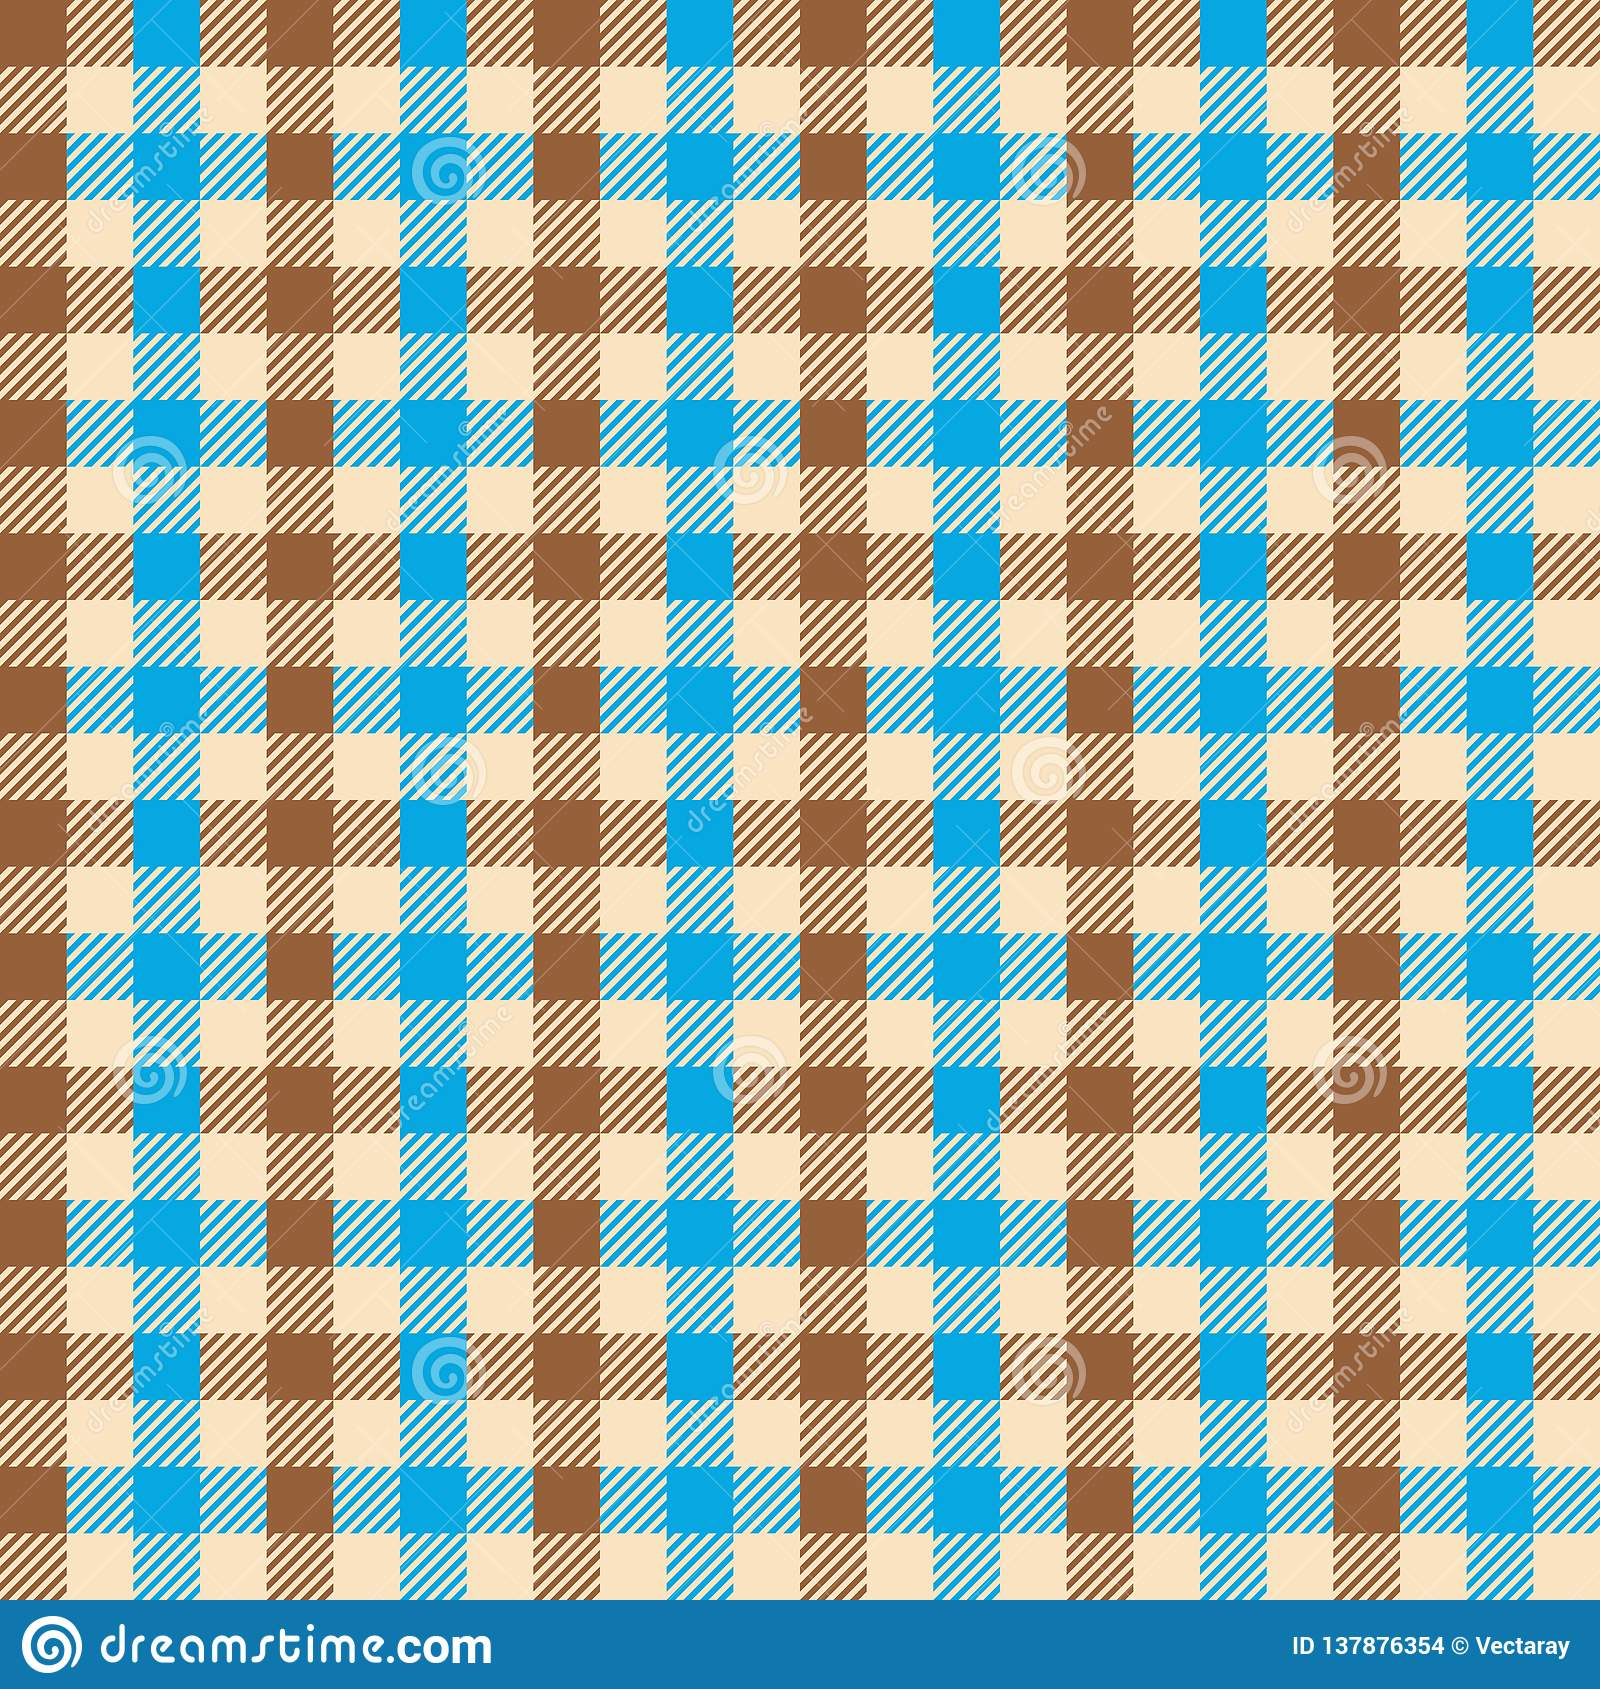 Seamless gingham vintage fabric textile pattern. Gingham check background.